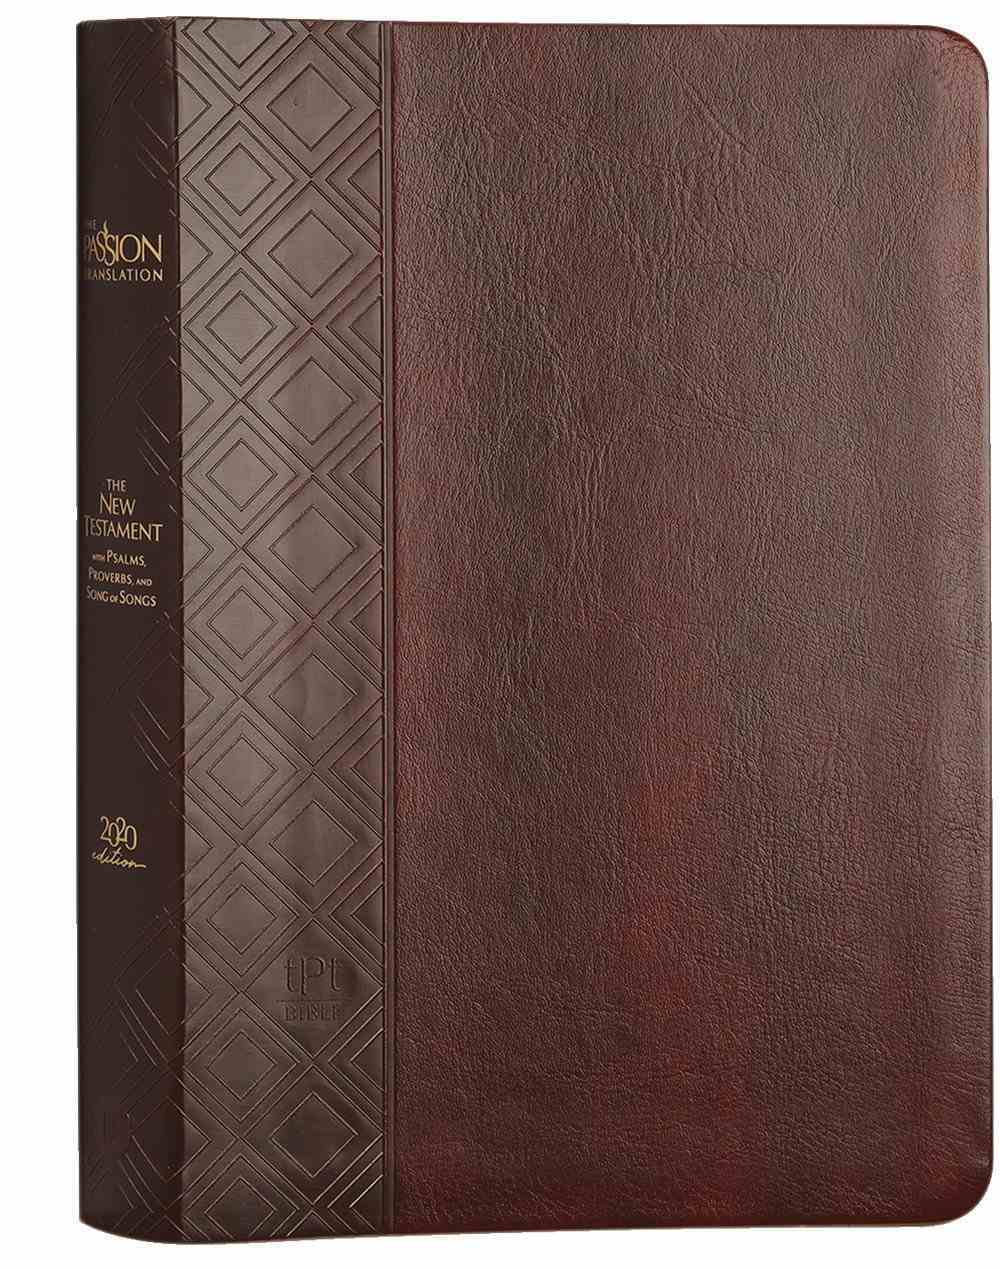 TPT New Testament Brown (Black Letter Edition) (With Psalms, Proverbs And The Song Of Songs) Imitation Leather